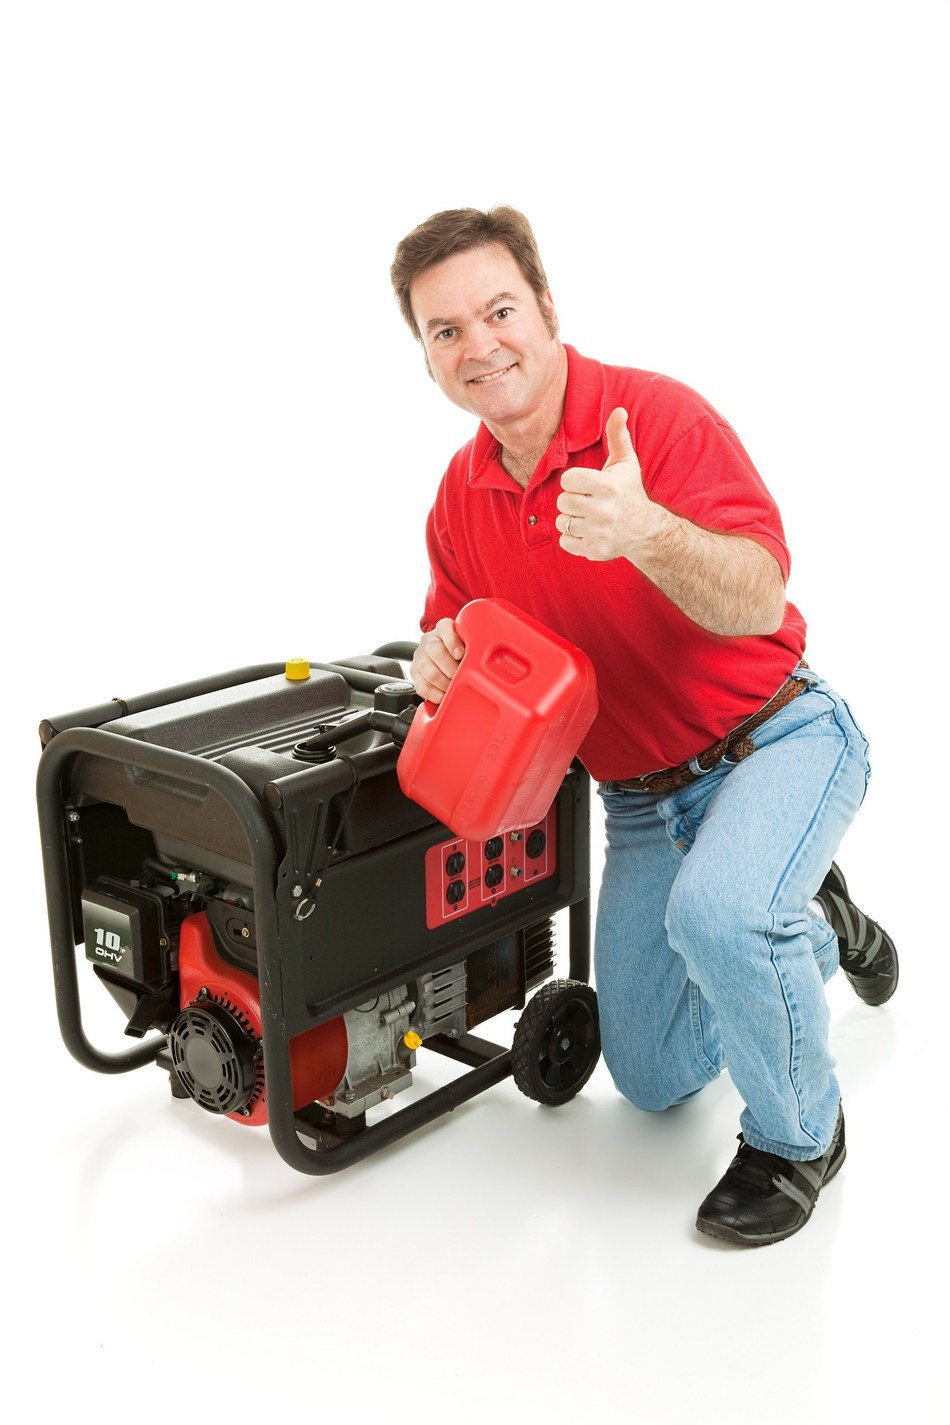 """""""Not having power when you need it is frustrating, so a generator can provide emergency backup power at a reasonable cost. But, it's important to follow all manufacturer's instructions when using one,"""" said Kris Kiser, President and CEO of the Outdoor Power Equipment Institute (OPEI). """"For instance, never place a generator in your garage or in your home. The generator should be a safe distance from your home and not near an air intake."""""""